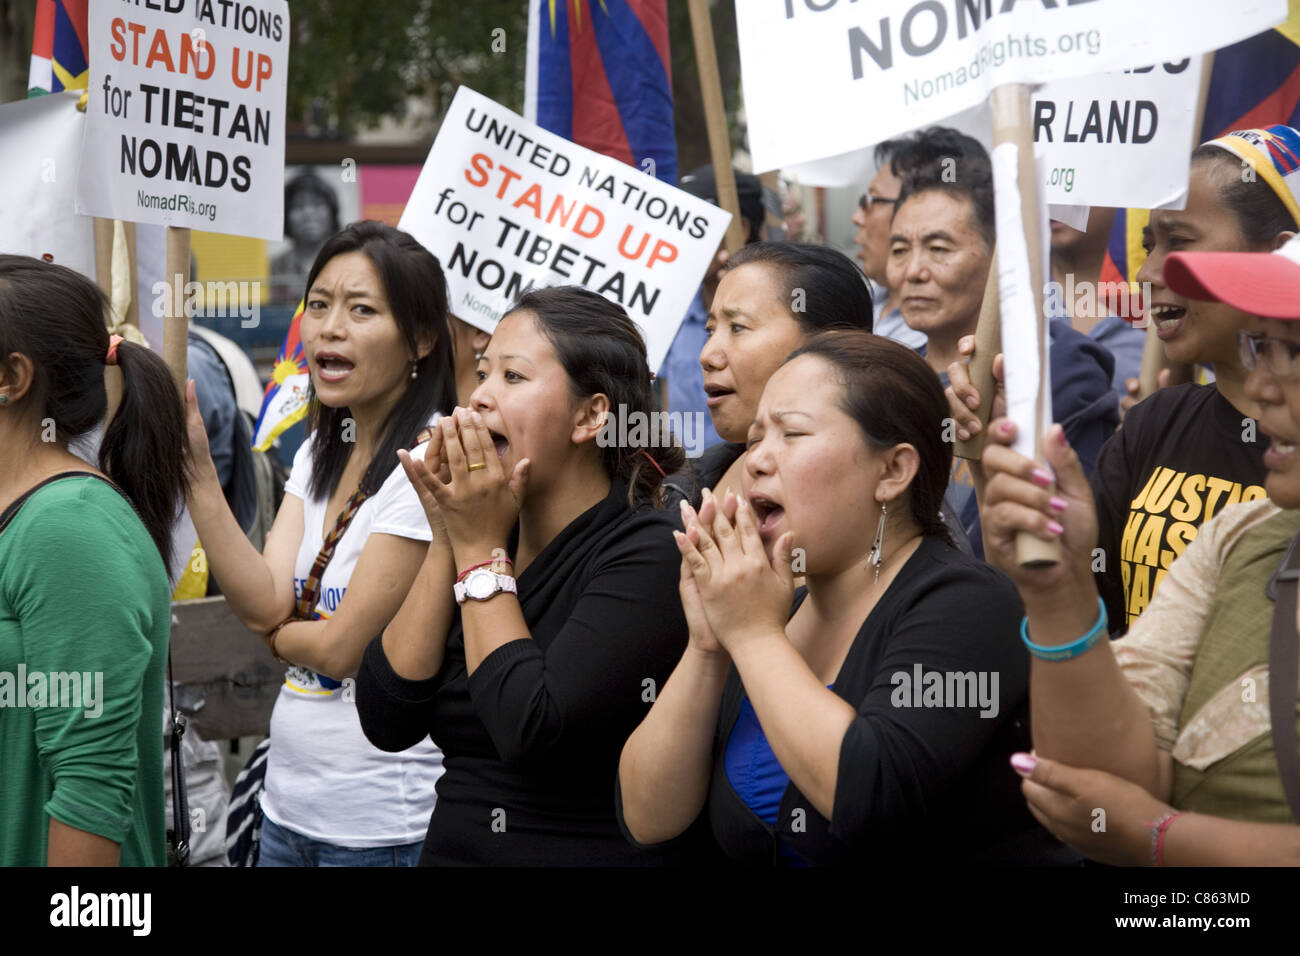 Protest rally at the UN in NYC to bring to light the harsh treatment of Tibetan nomads by the Chinese Government. - Stock Image